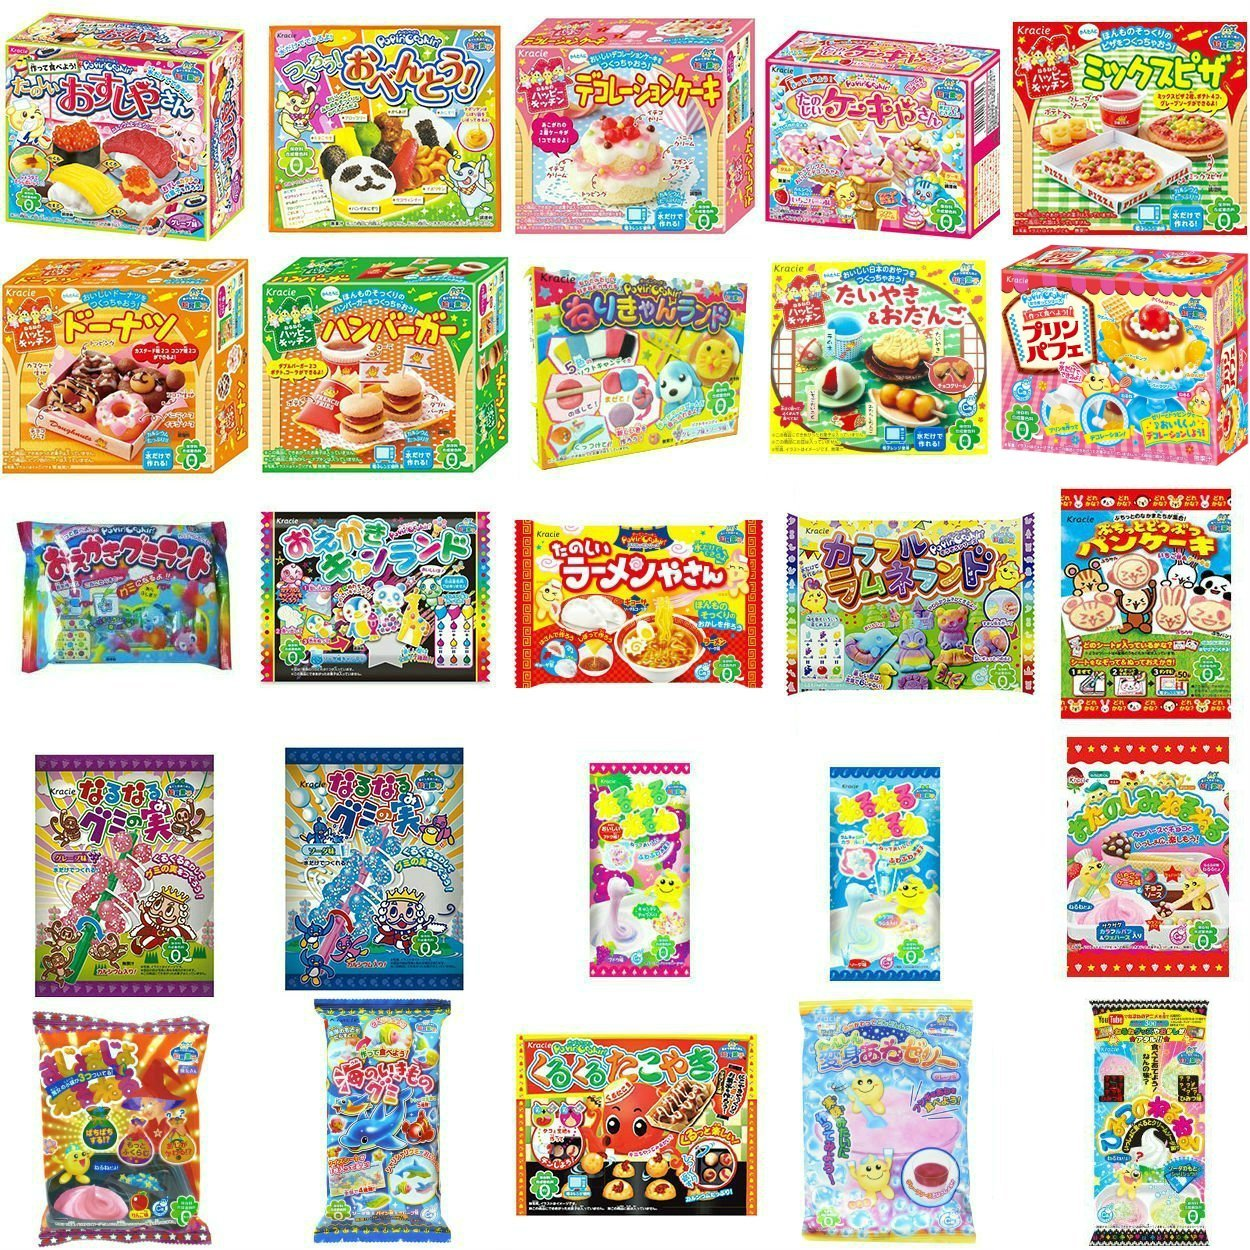 Popin cookin amazon - Amazon Com Kracie Popin Cookin 25 Item Bundle With Sushi Hamburger Bento Donuts Pizza Cake Shop And More Grocery Gourmet Food